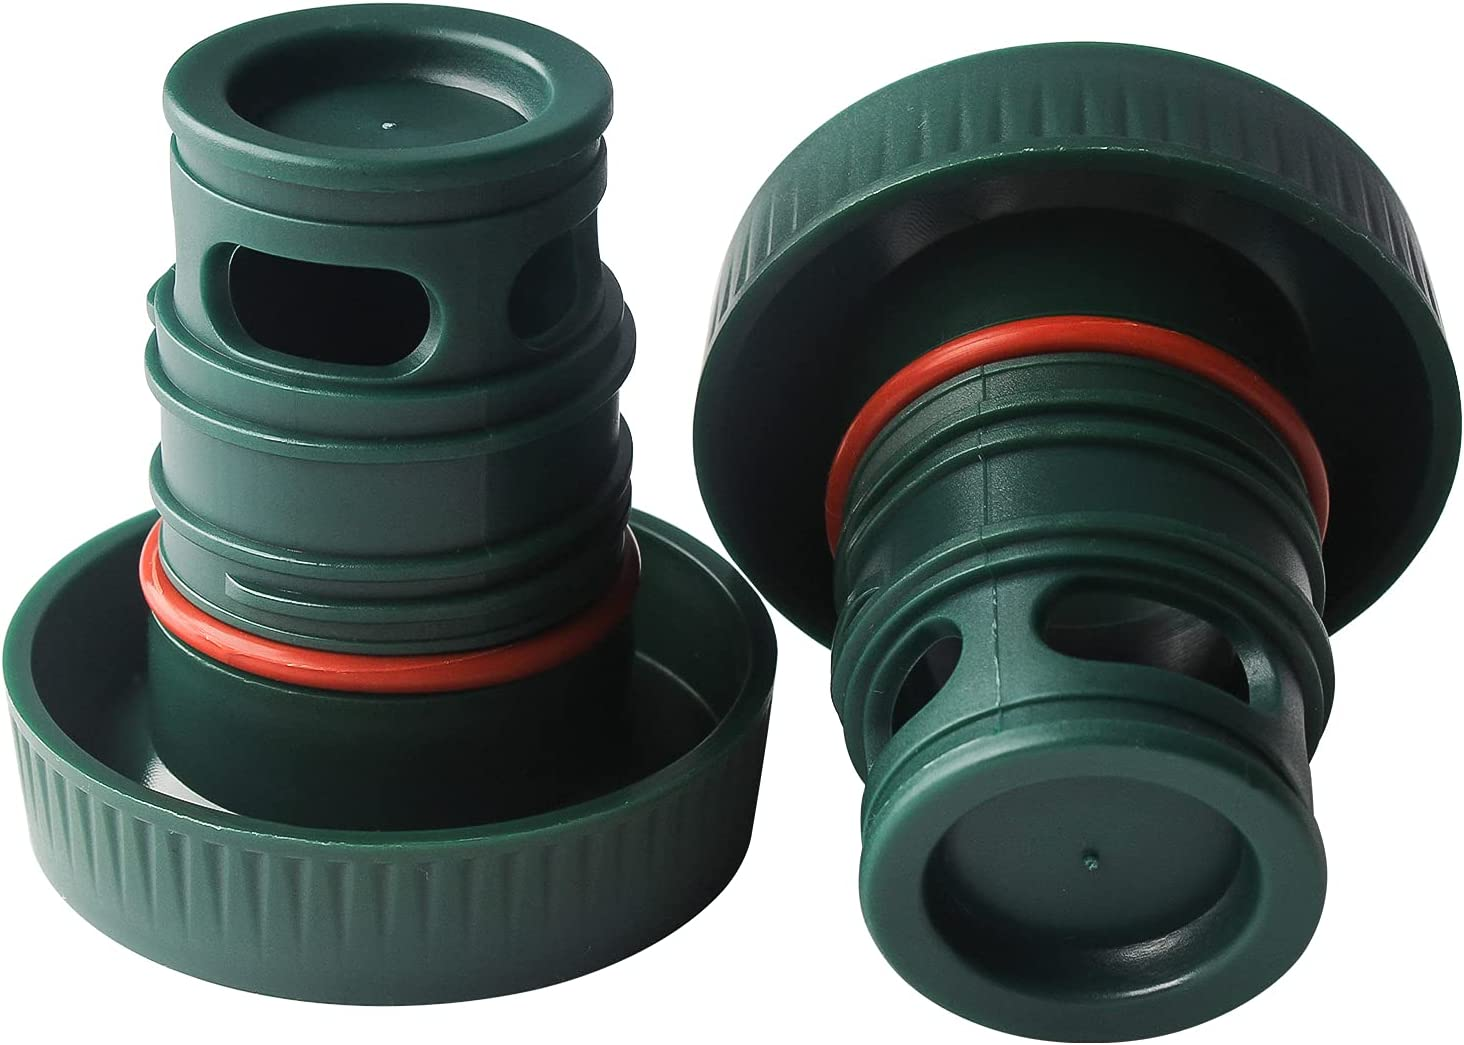 ACP0060-632 Classic Thermos Stopper - Replacement Stanley Thermos Stopper Before Pre2002 1.1   2 Qt Classic Bottles 11 13 For Models A944-DH A945-DH - 2 Pack